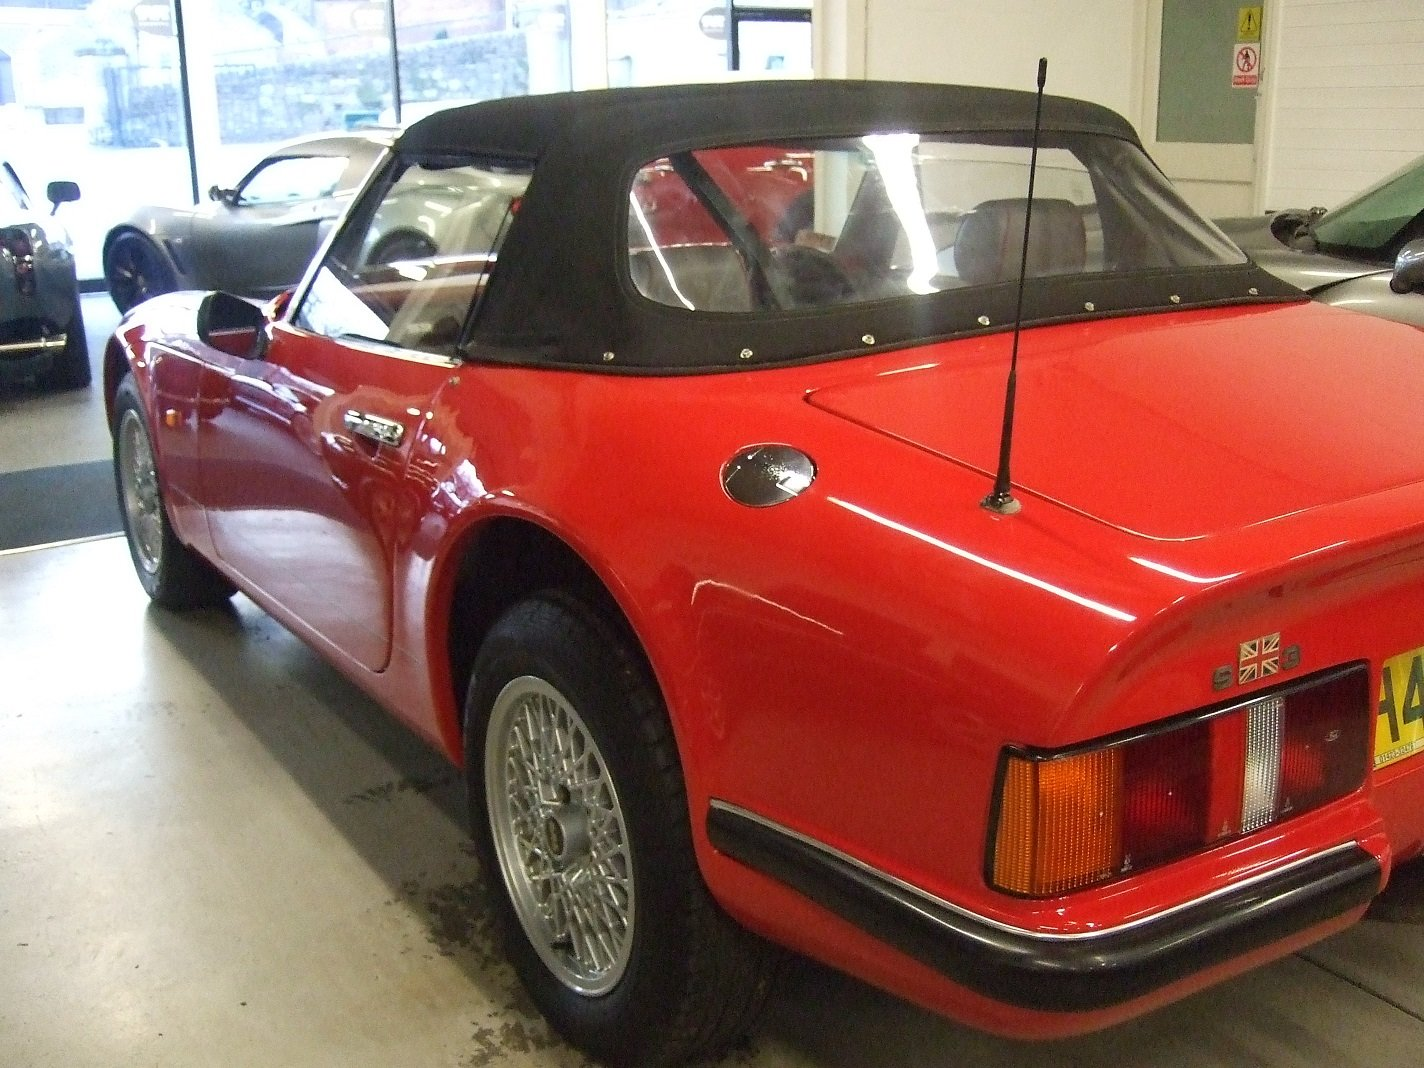 1991 Tvr s3  rhd  For Sale (picture 1 of 6)